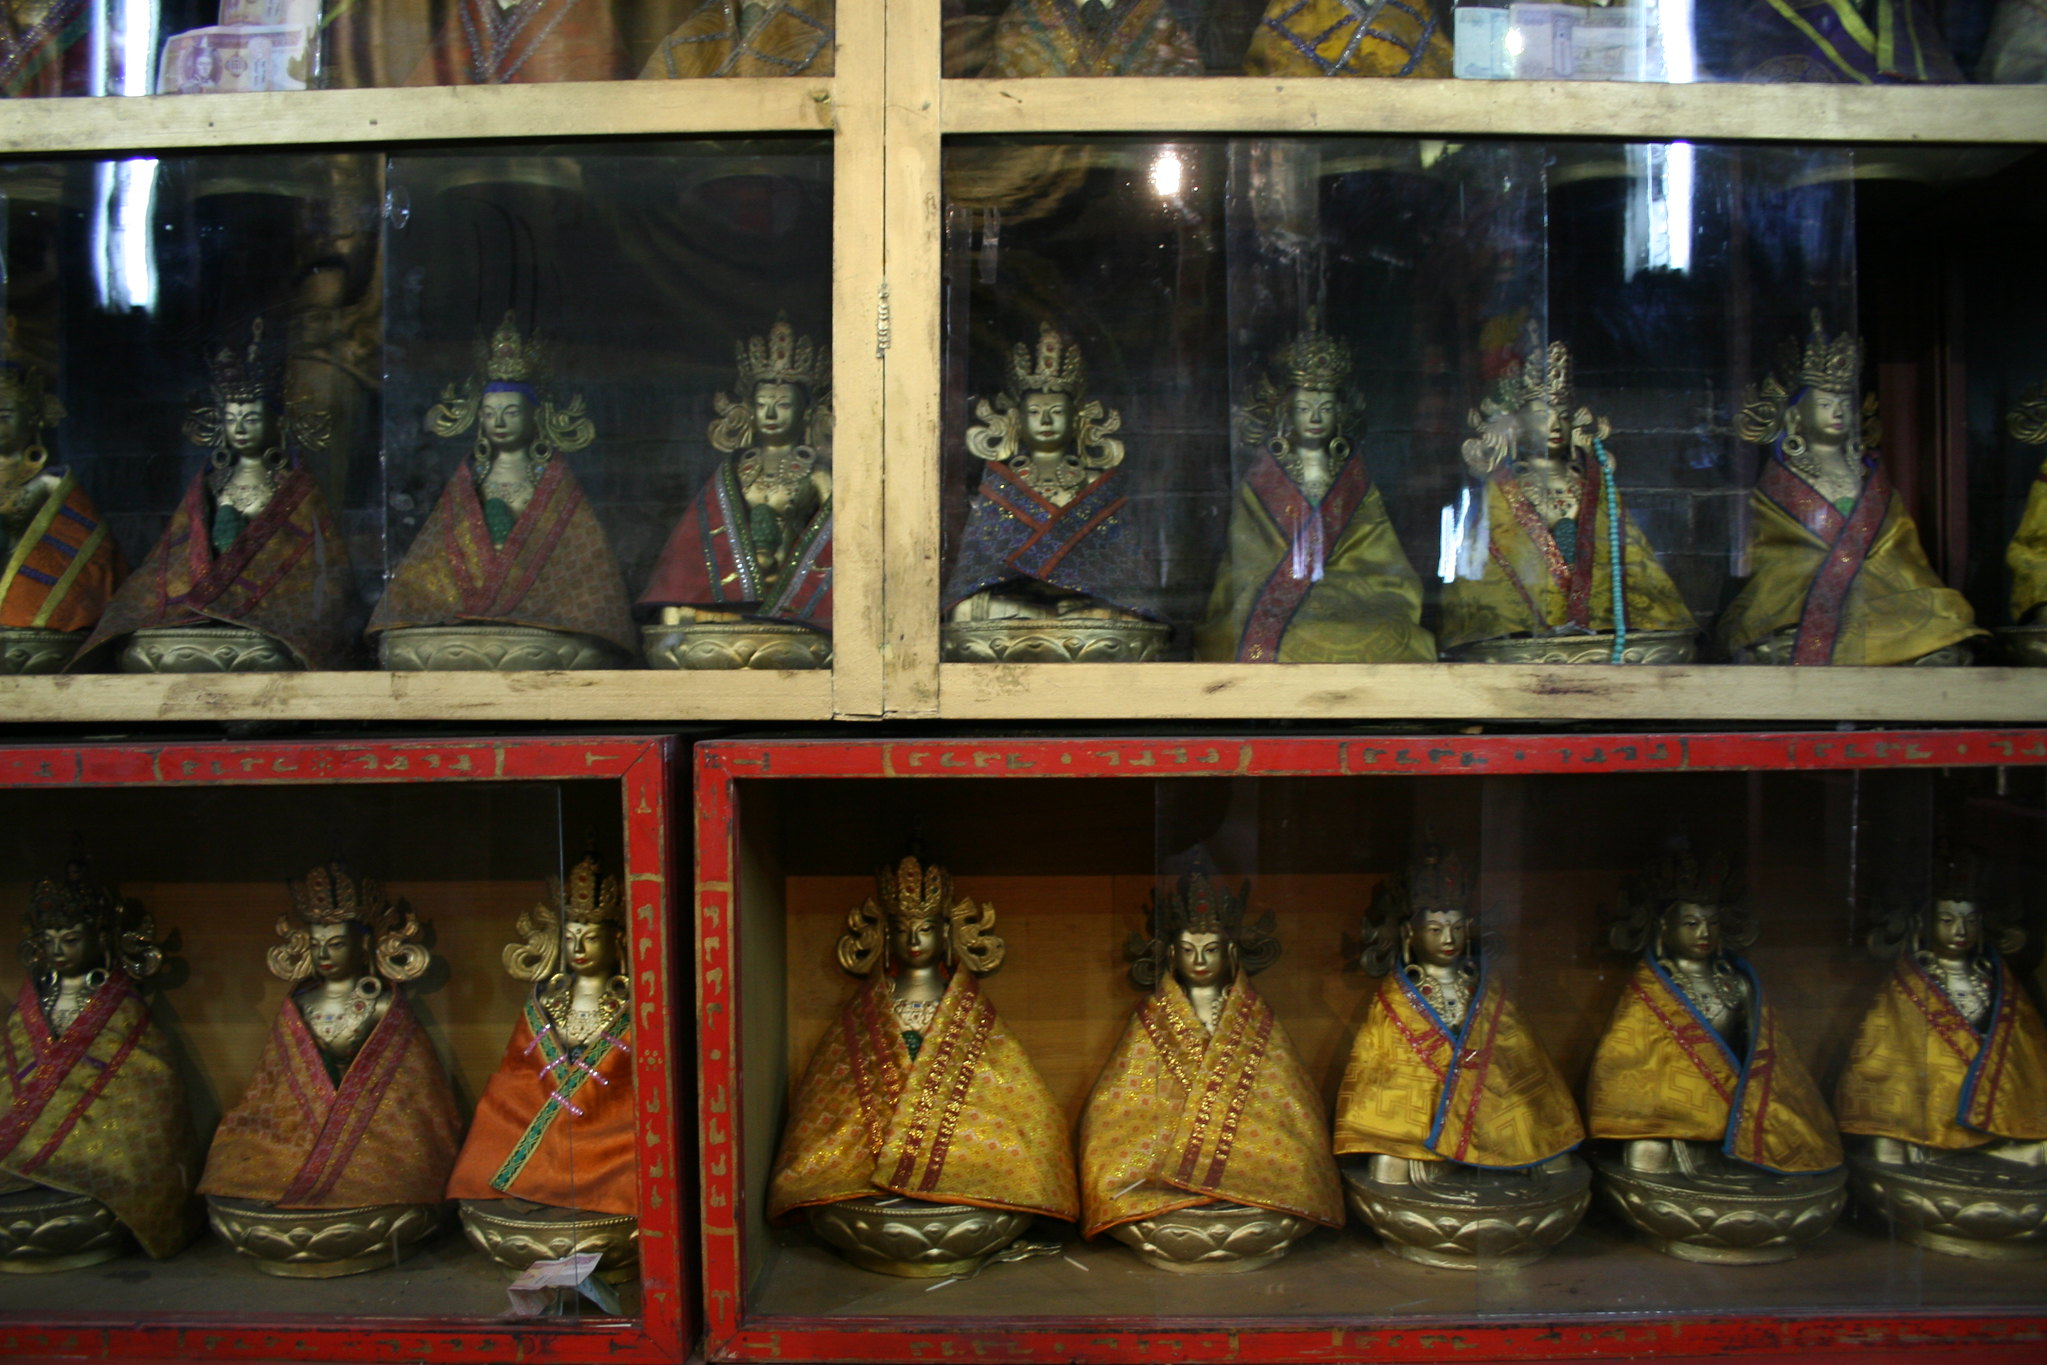 Statues of deities and bodhisattvas in storage, Ulaanbaatar